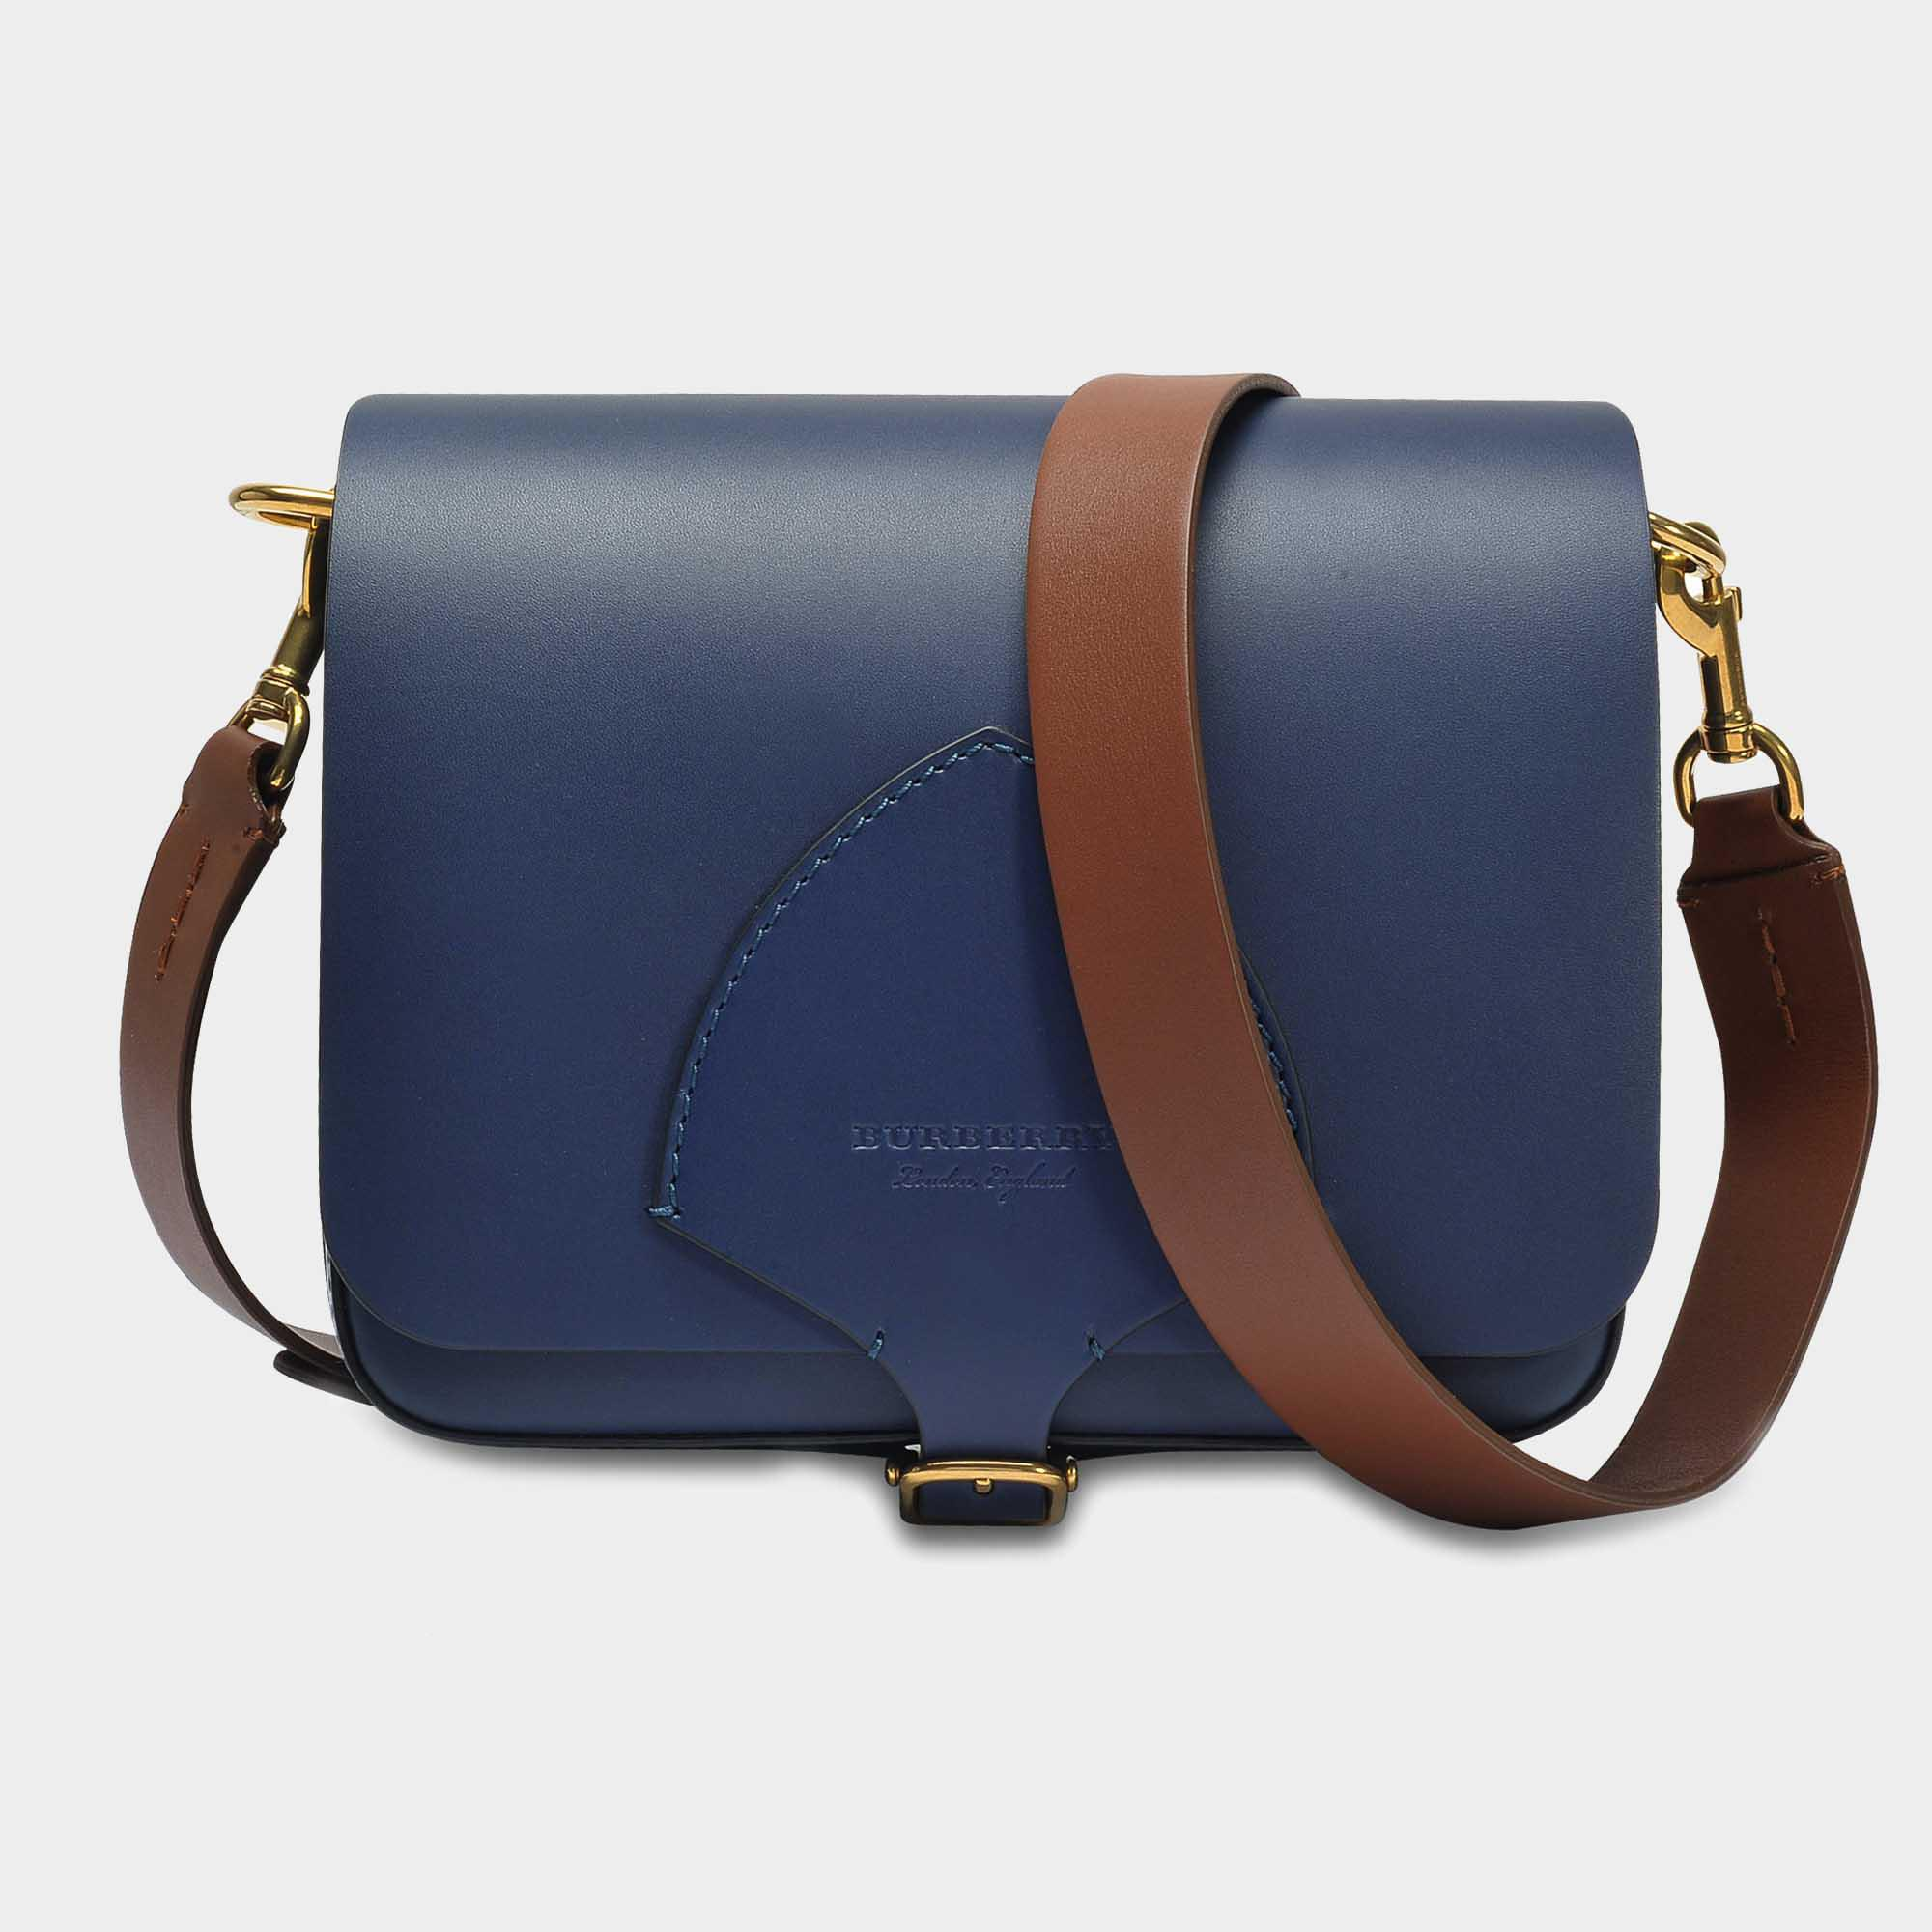 Good Selling Amazon Sale Online The Square Satchel Bag in Mid Indigo Soft Leather Burberry Clearance Store Sale Online Cheap Browse MVekhBt2d